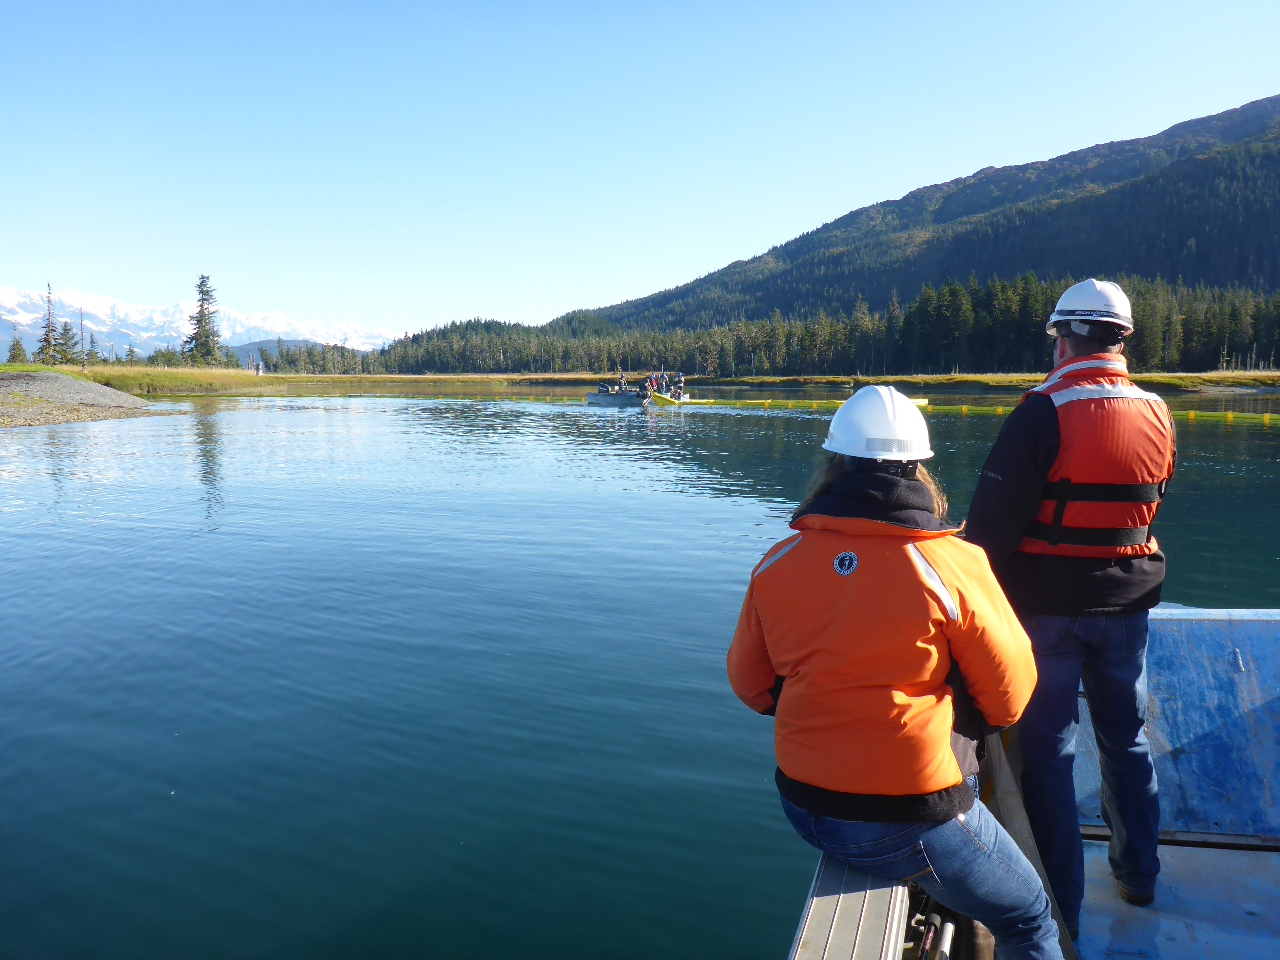 Photo of Representatives from the Alaska Department of Environmental Conservation and SERVS observing an oil spill exercise in Prince William Sound.